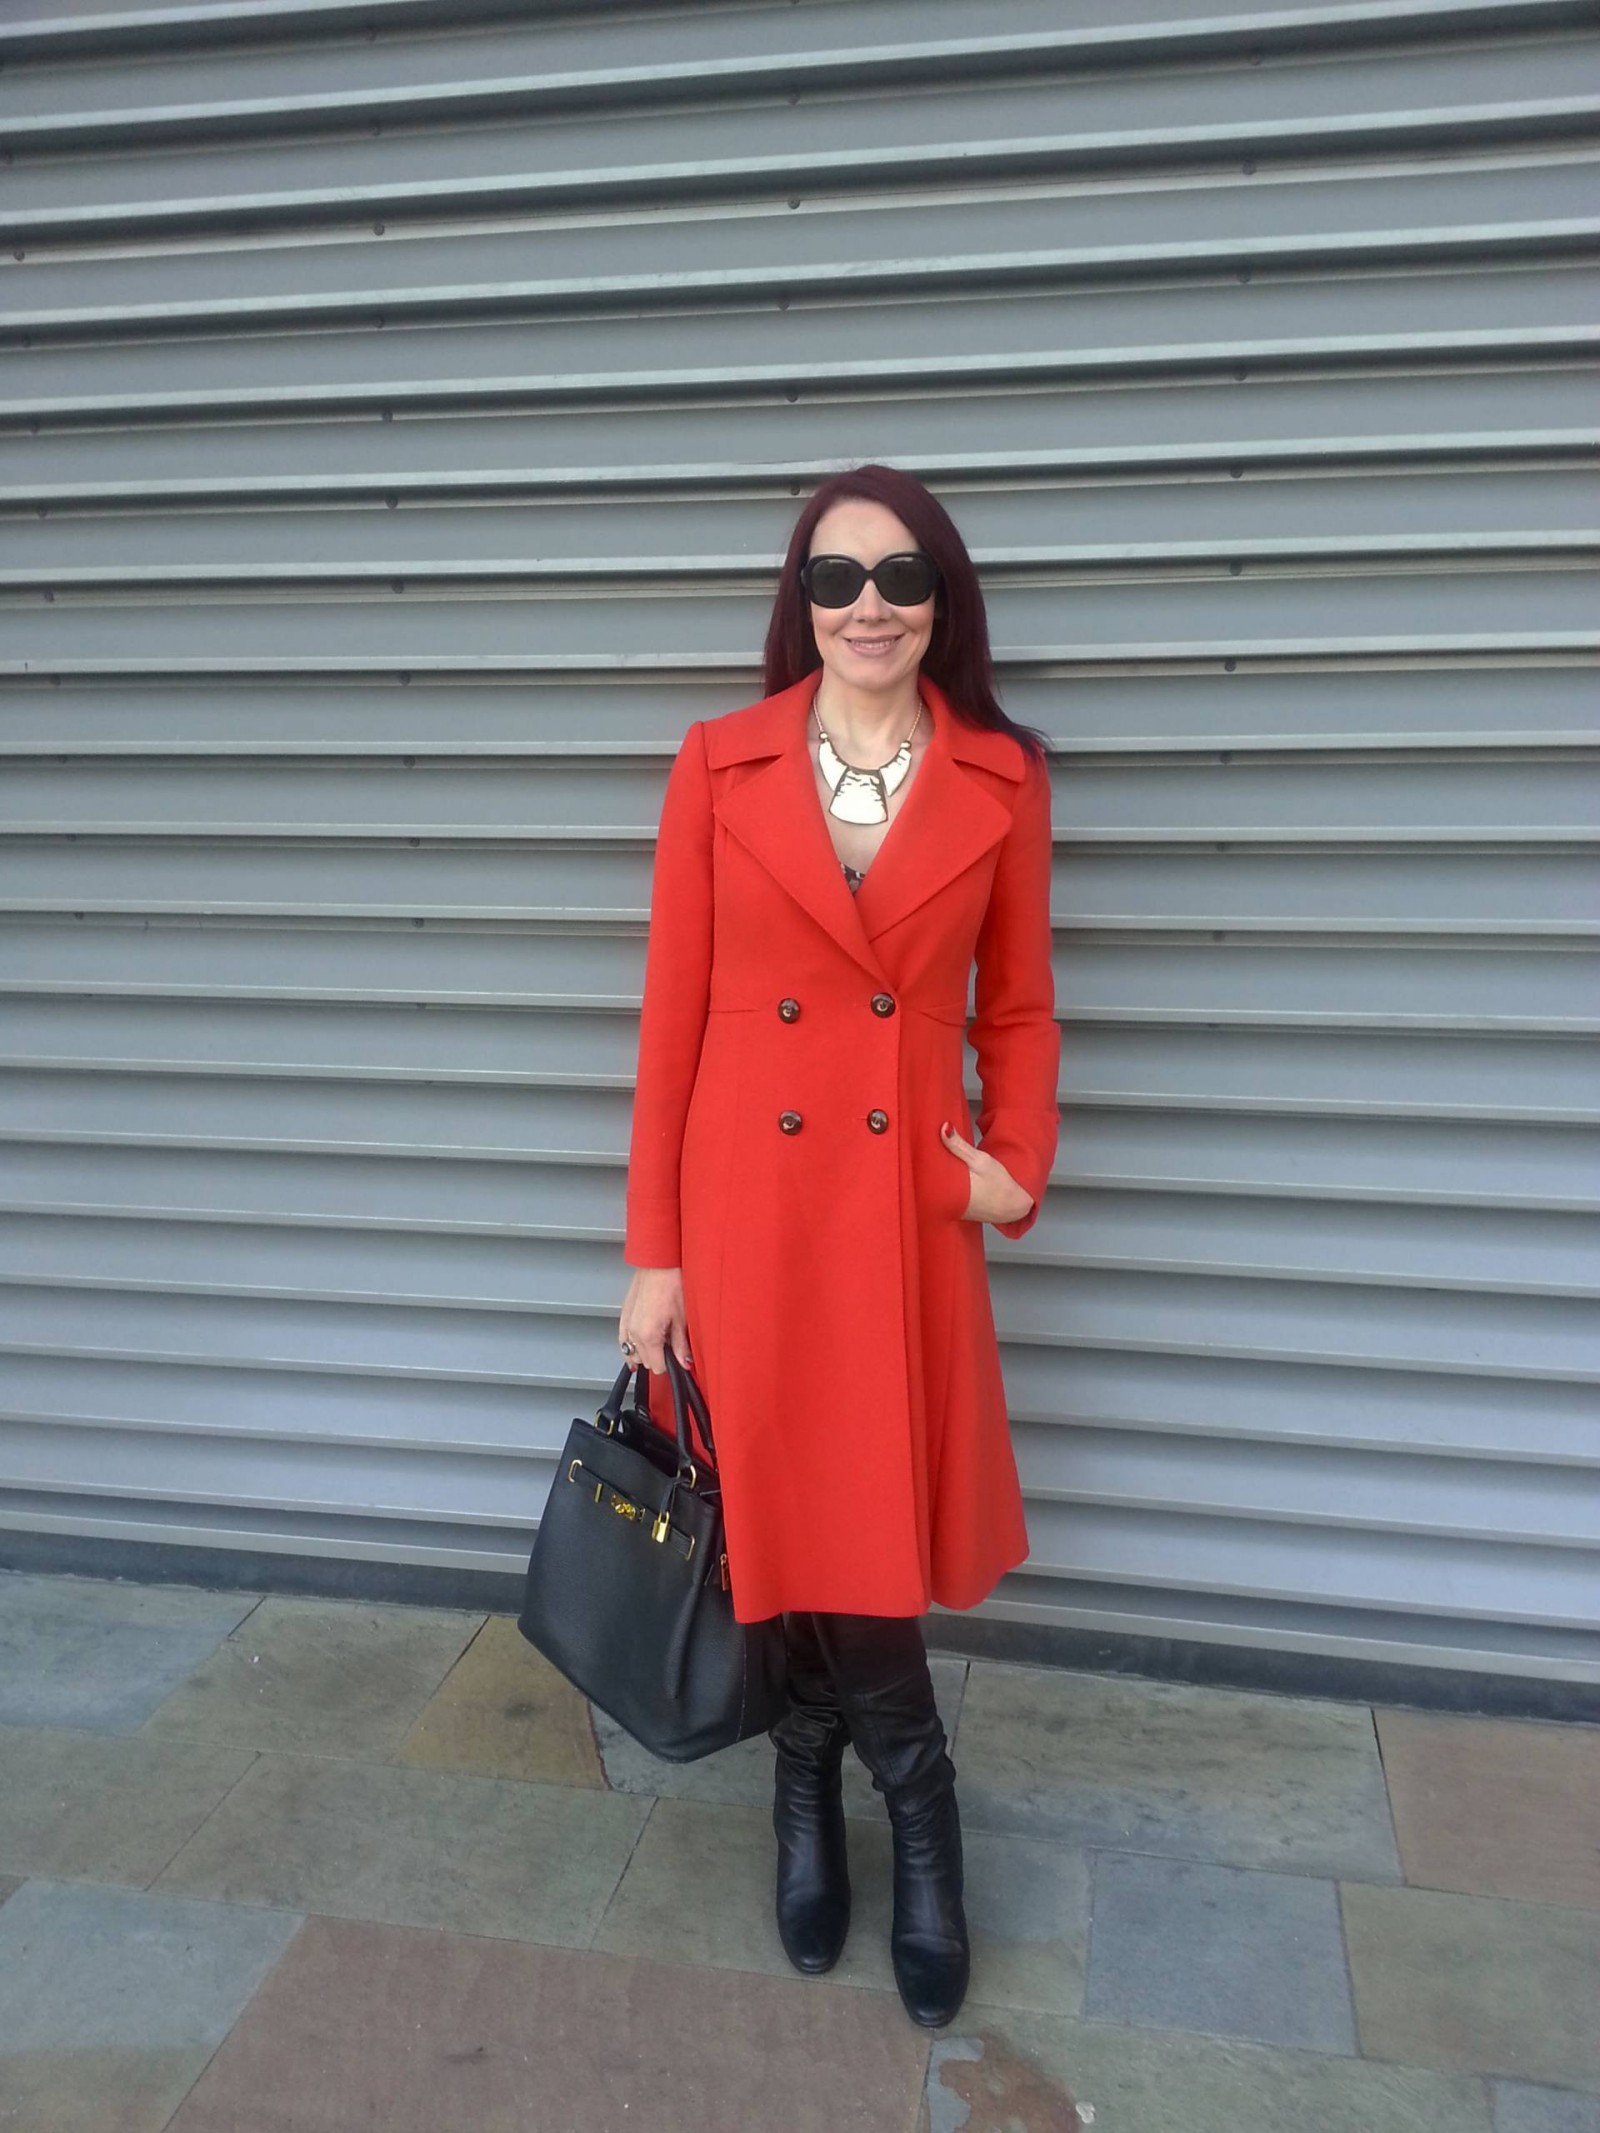 Red Jasper Conran Debenhams coat